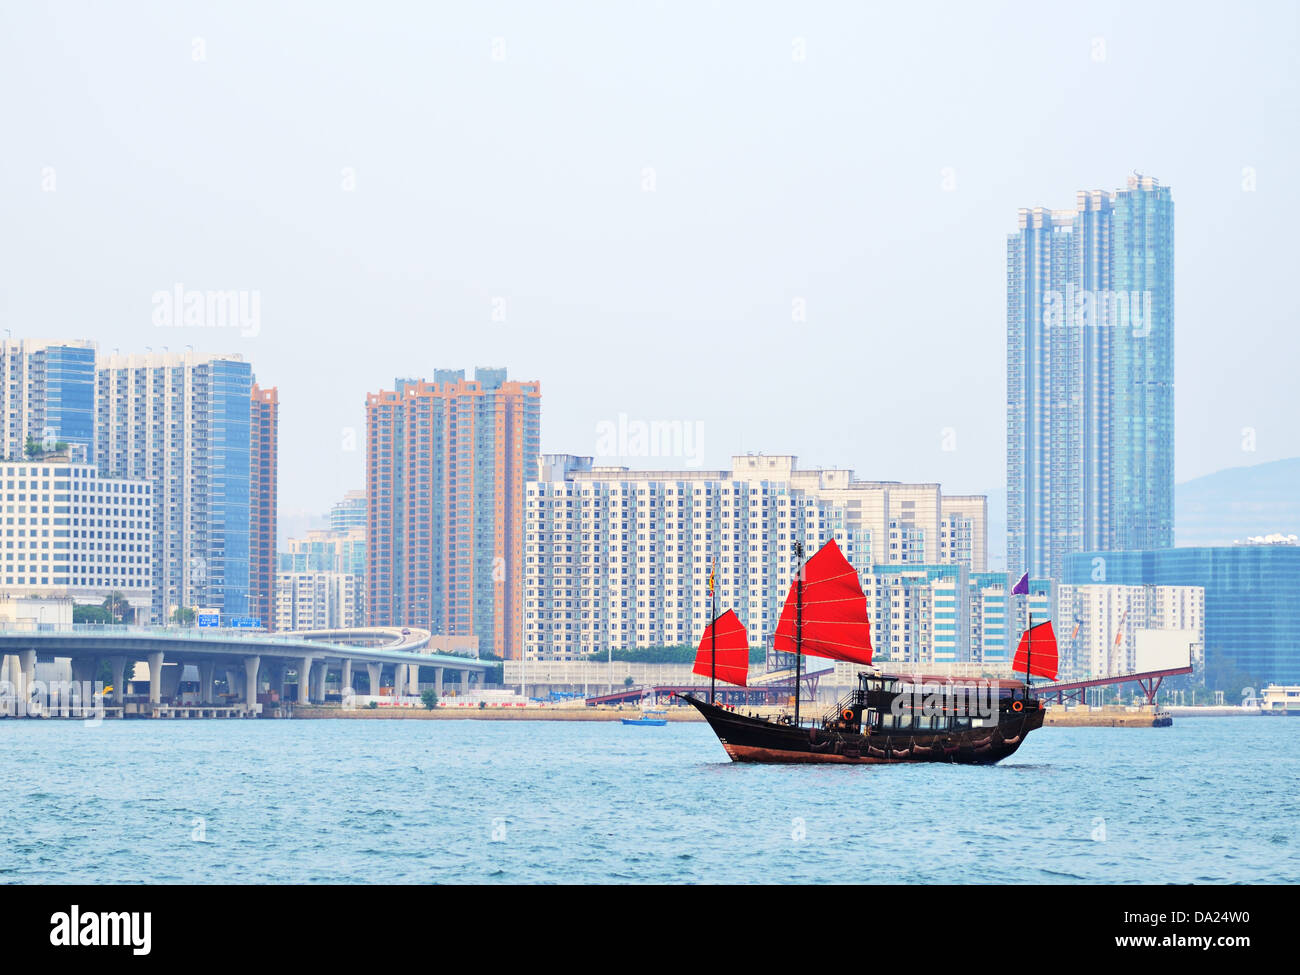 Chinese junk shp in Victoria Harbor, Hong Kong, China. - Stock Image